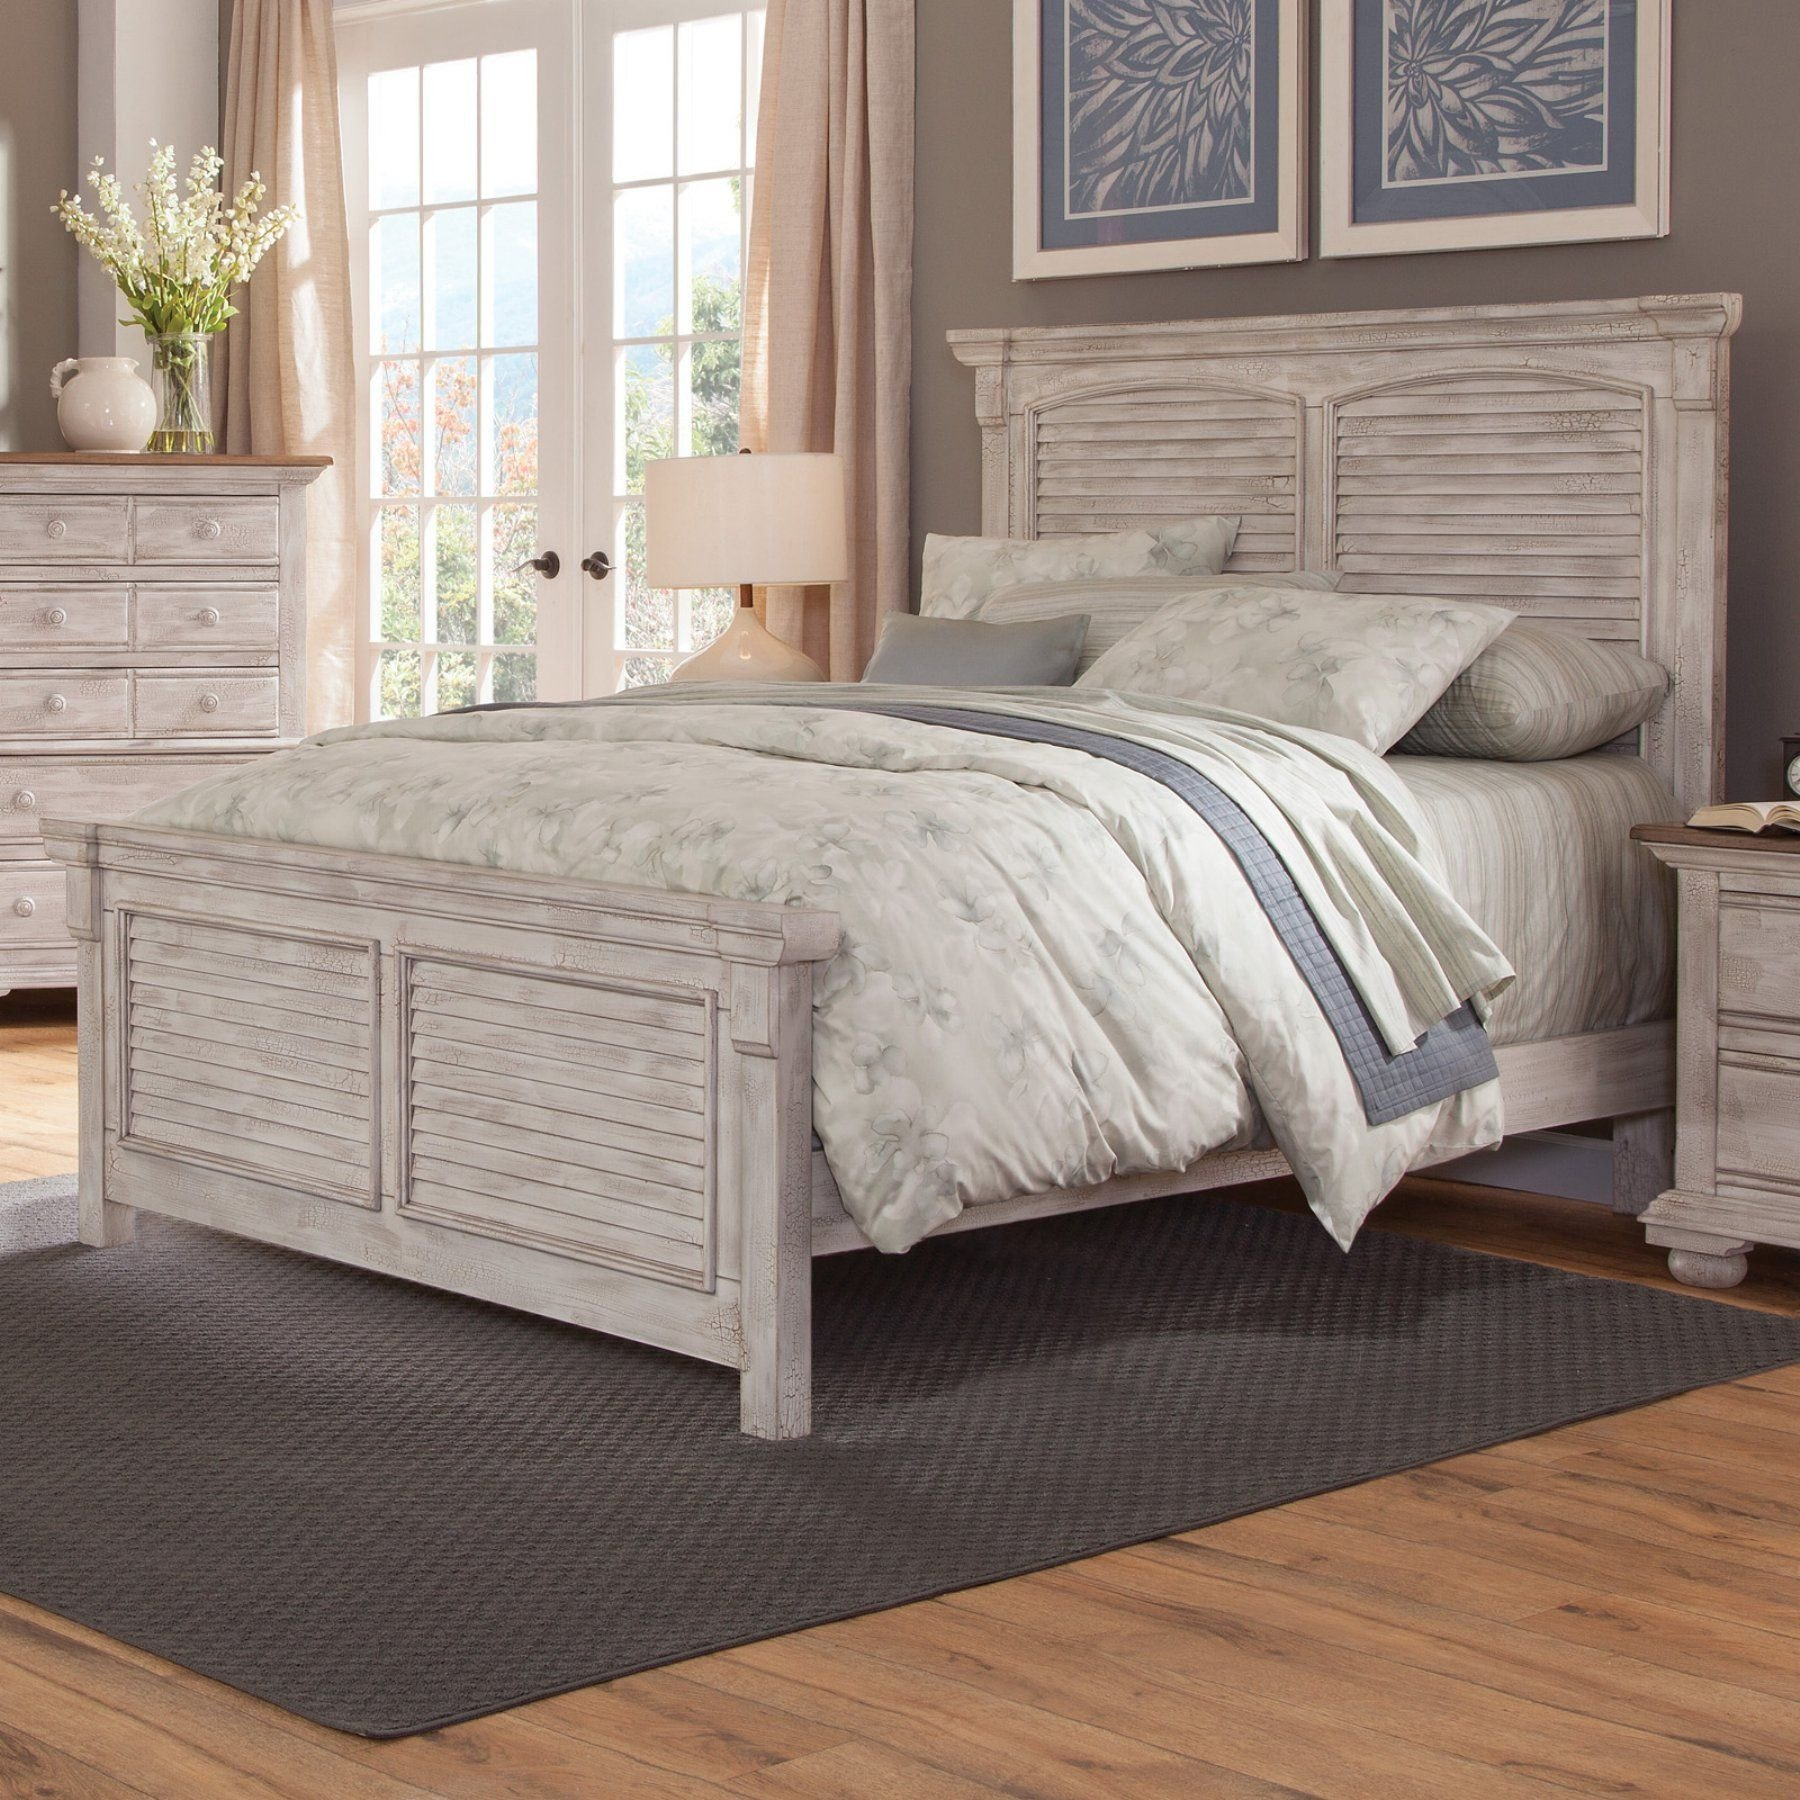 Distressed Wood Bedroom Furniture Elegant American Woodcrafters Cottage Traditions Square Panel Bed